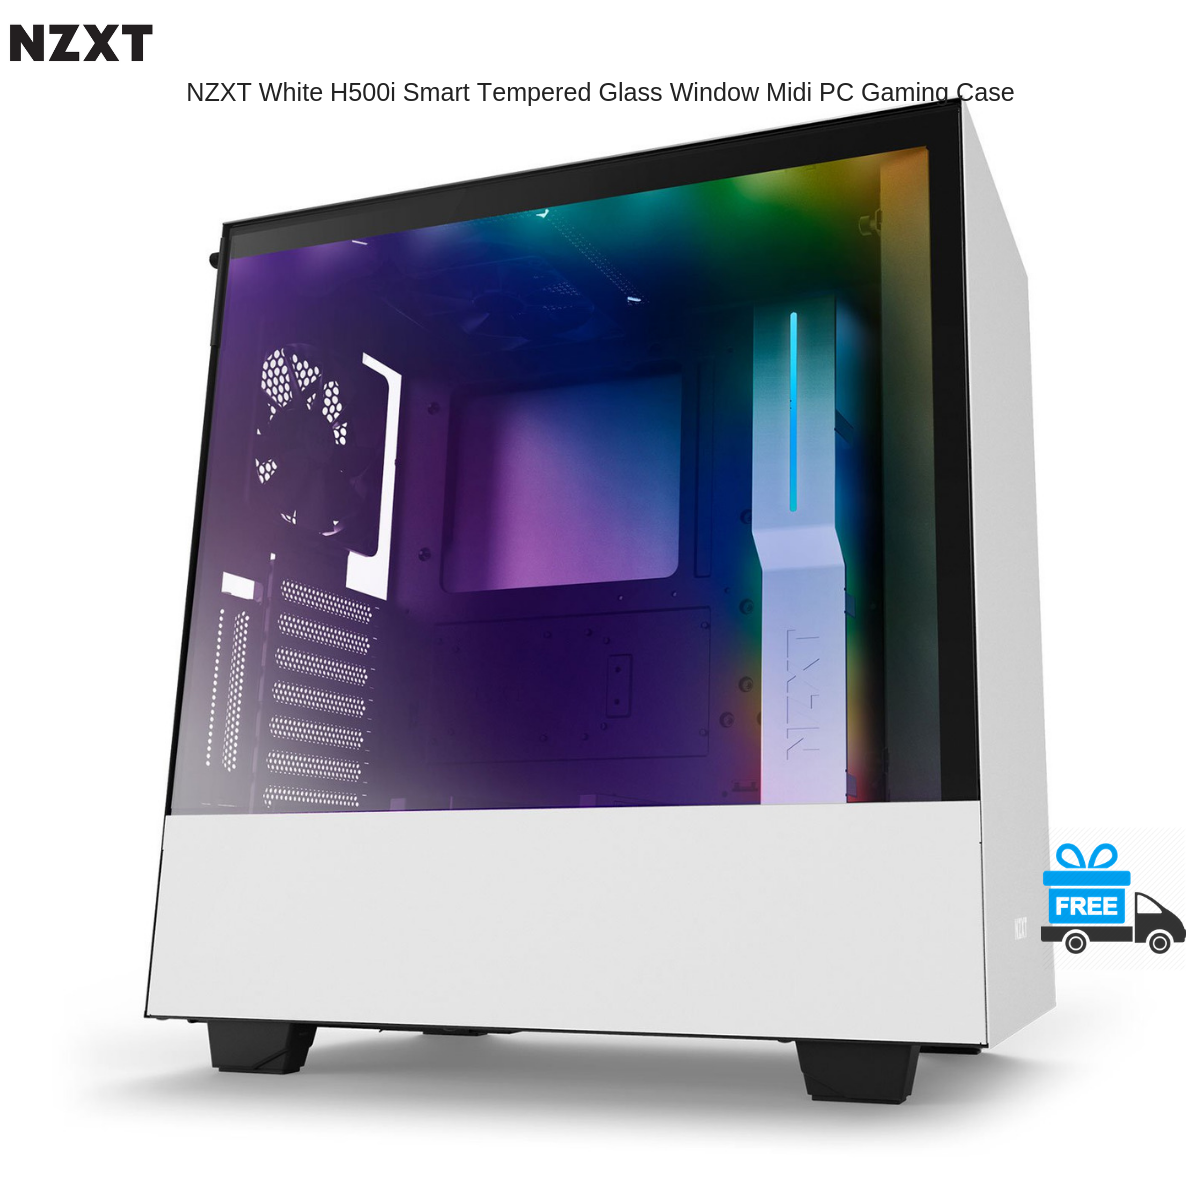 NZXT White H500i Smart Tempered Glass Window Midi PC Gaming Case